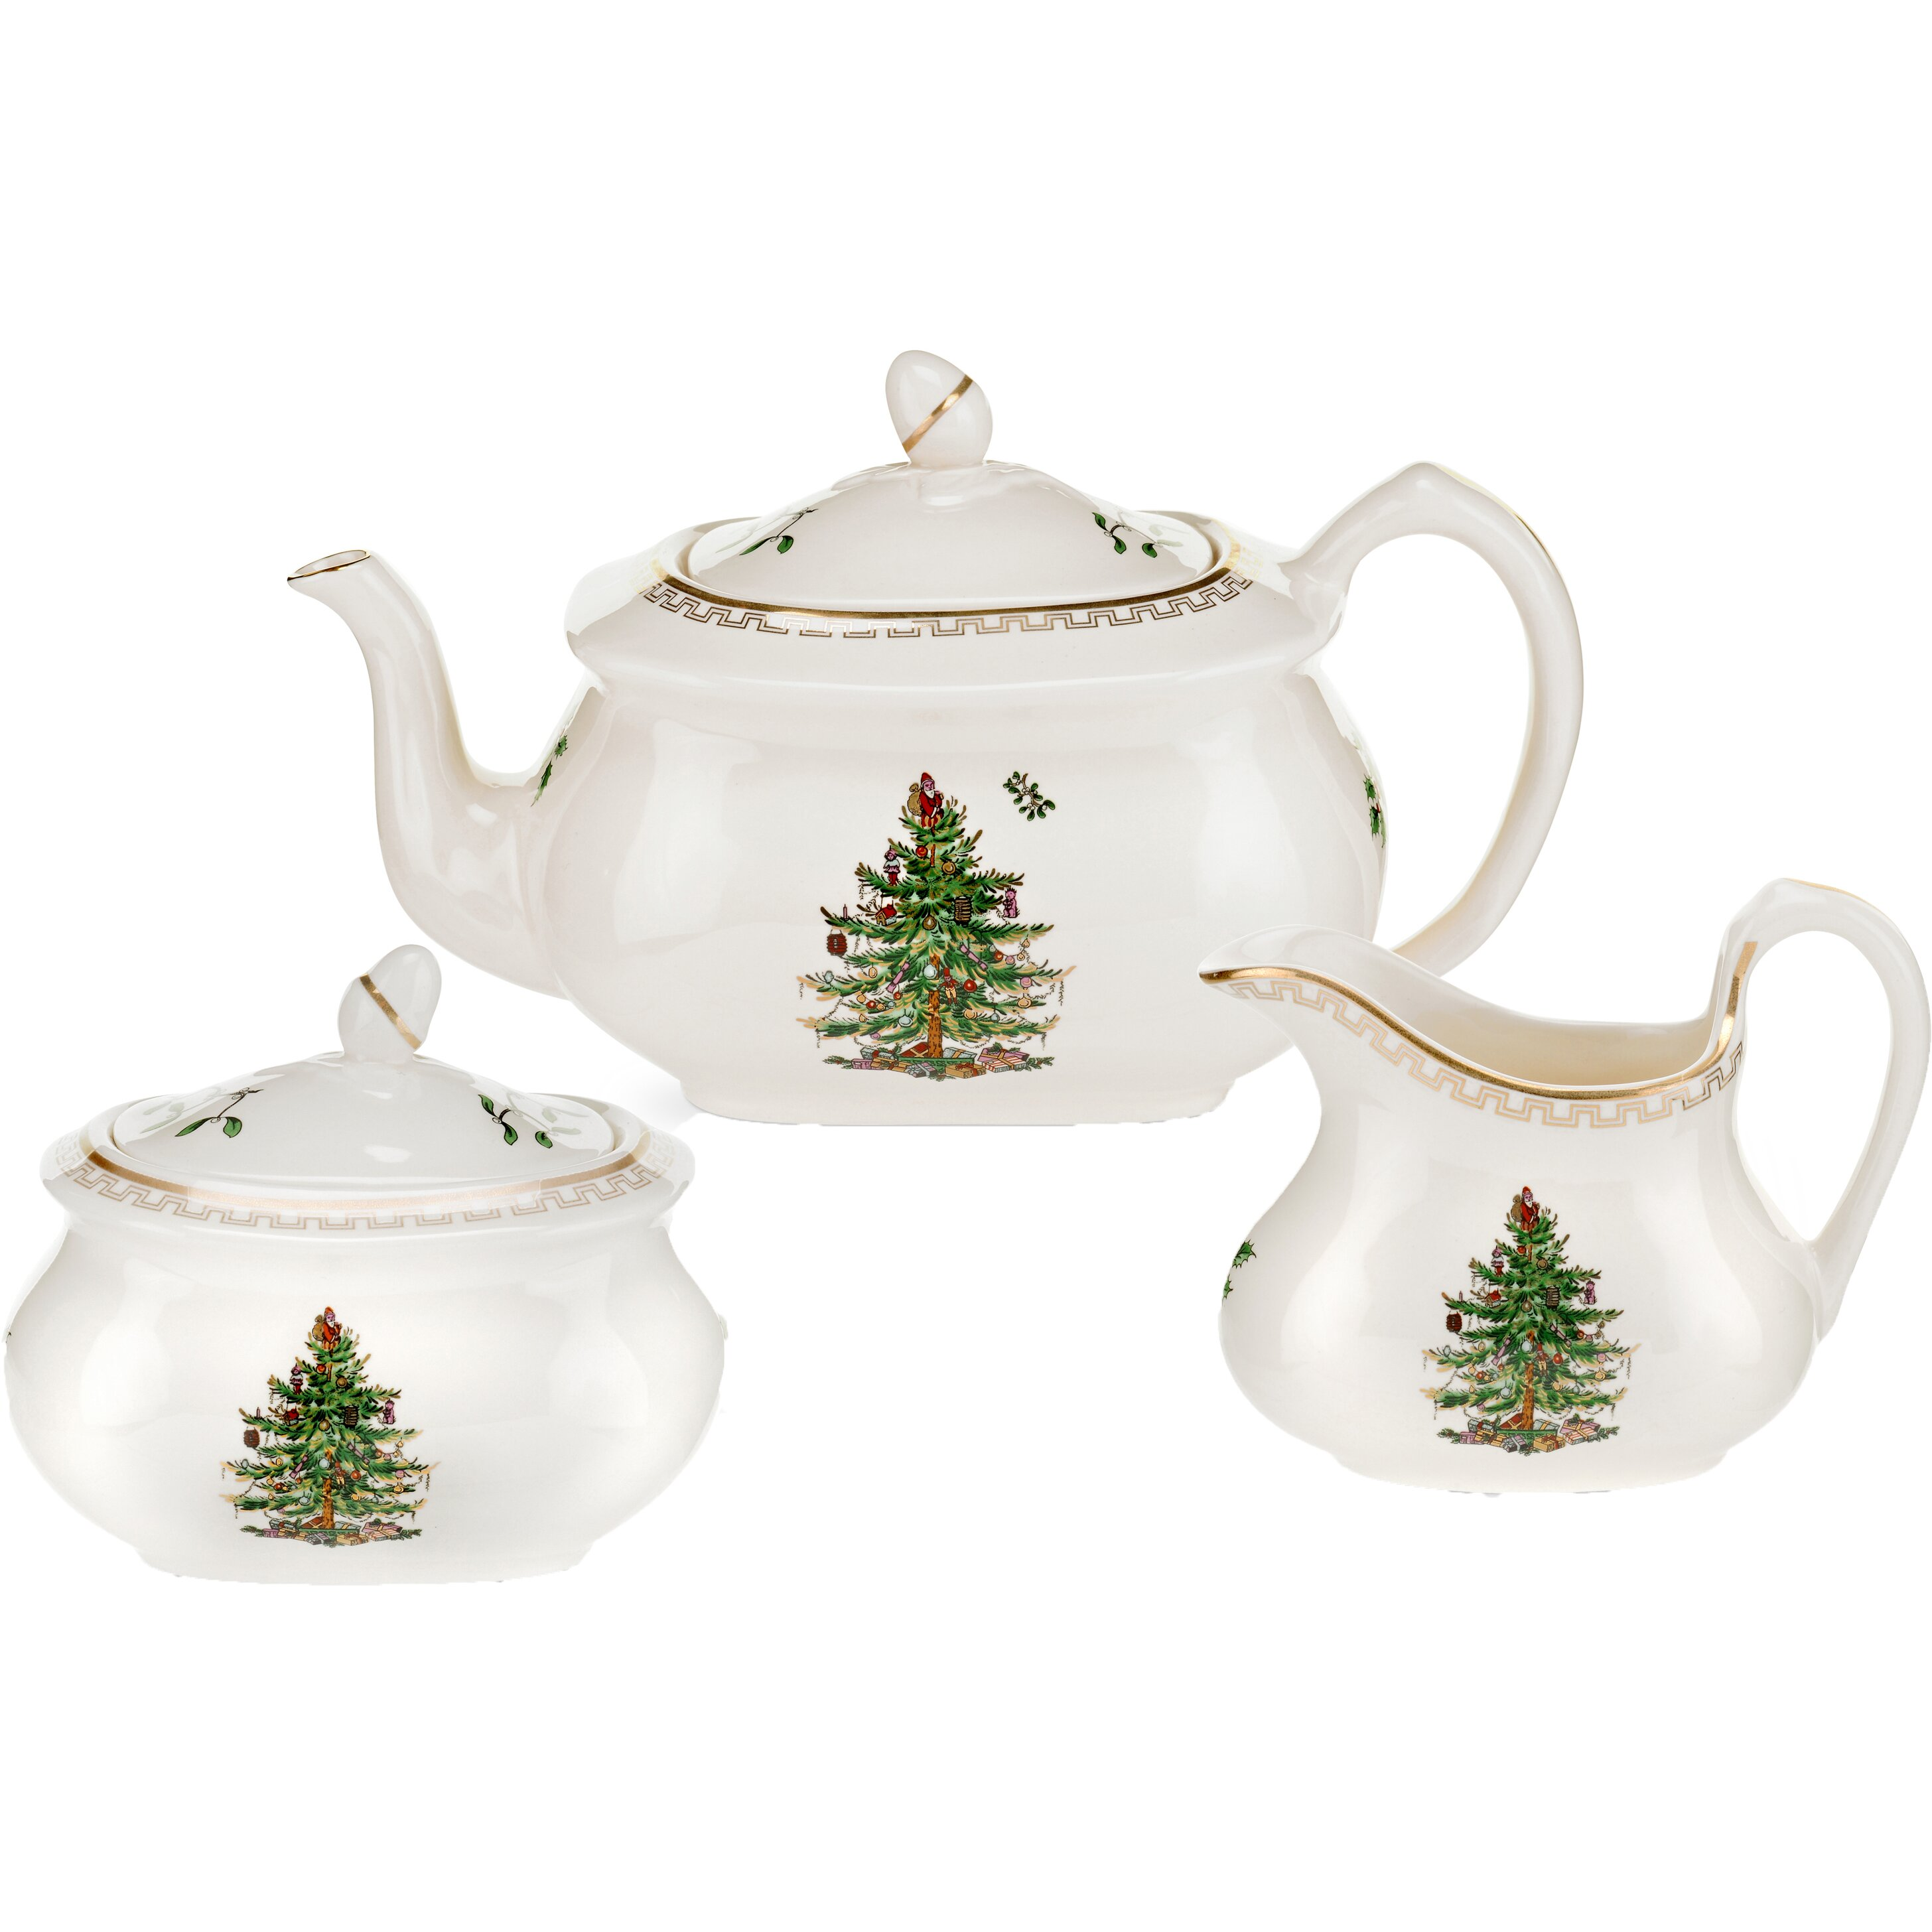 Spode Christmas Tree Candle Holder: Spode Christmas Tree Gold 3 Piece Teapot Set & Reviews